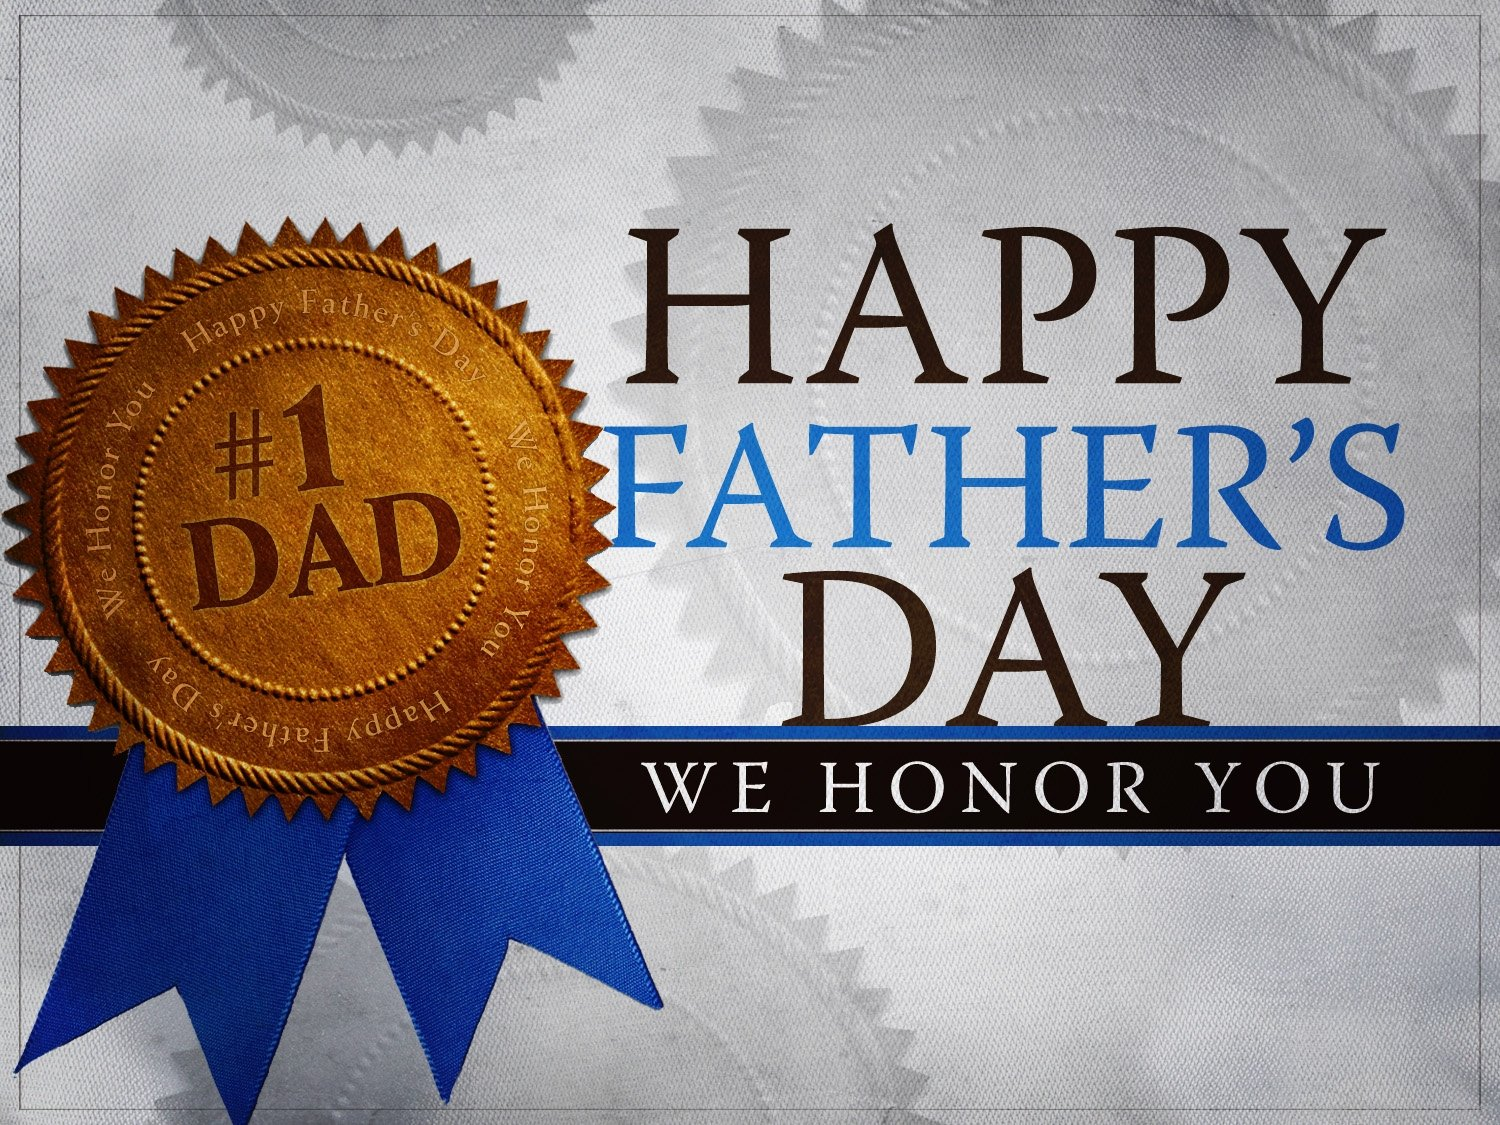 Happy-Fathers-Day-We-Honor-You.jpg